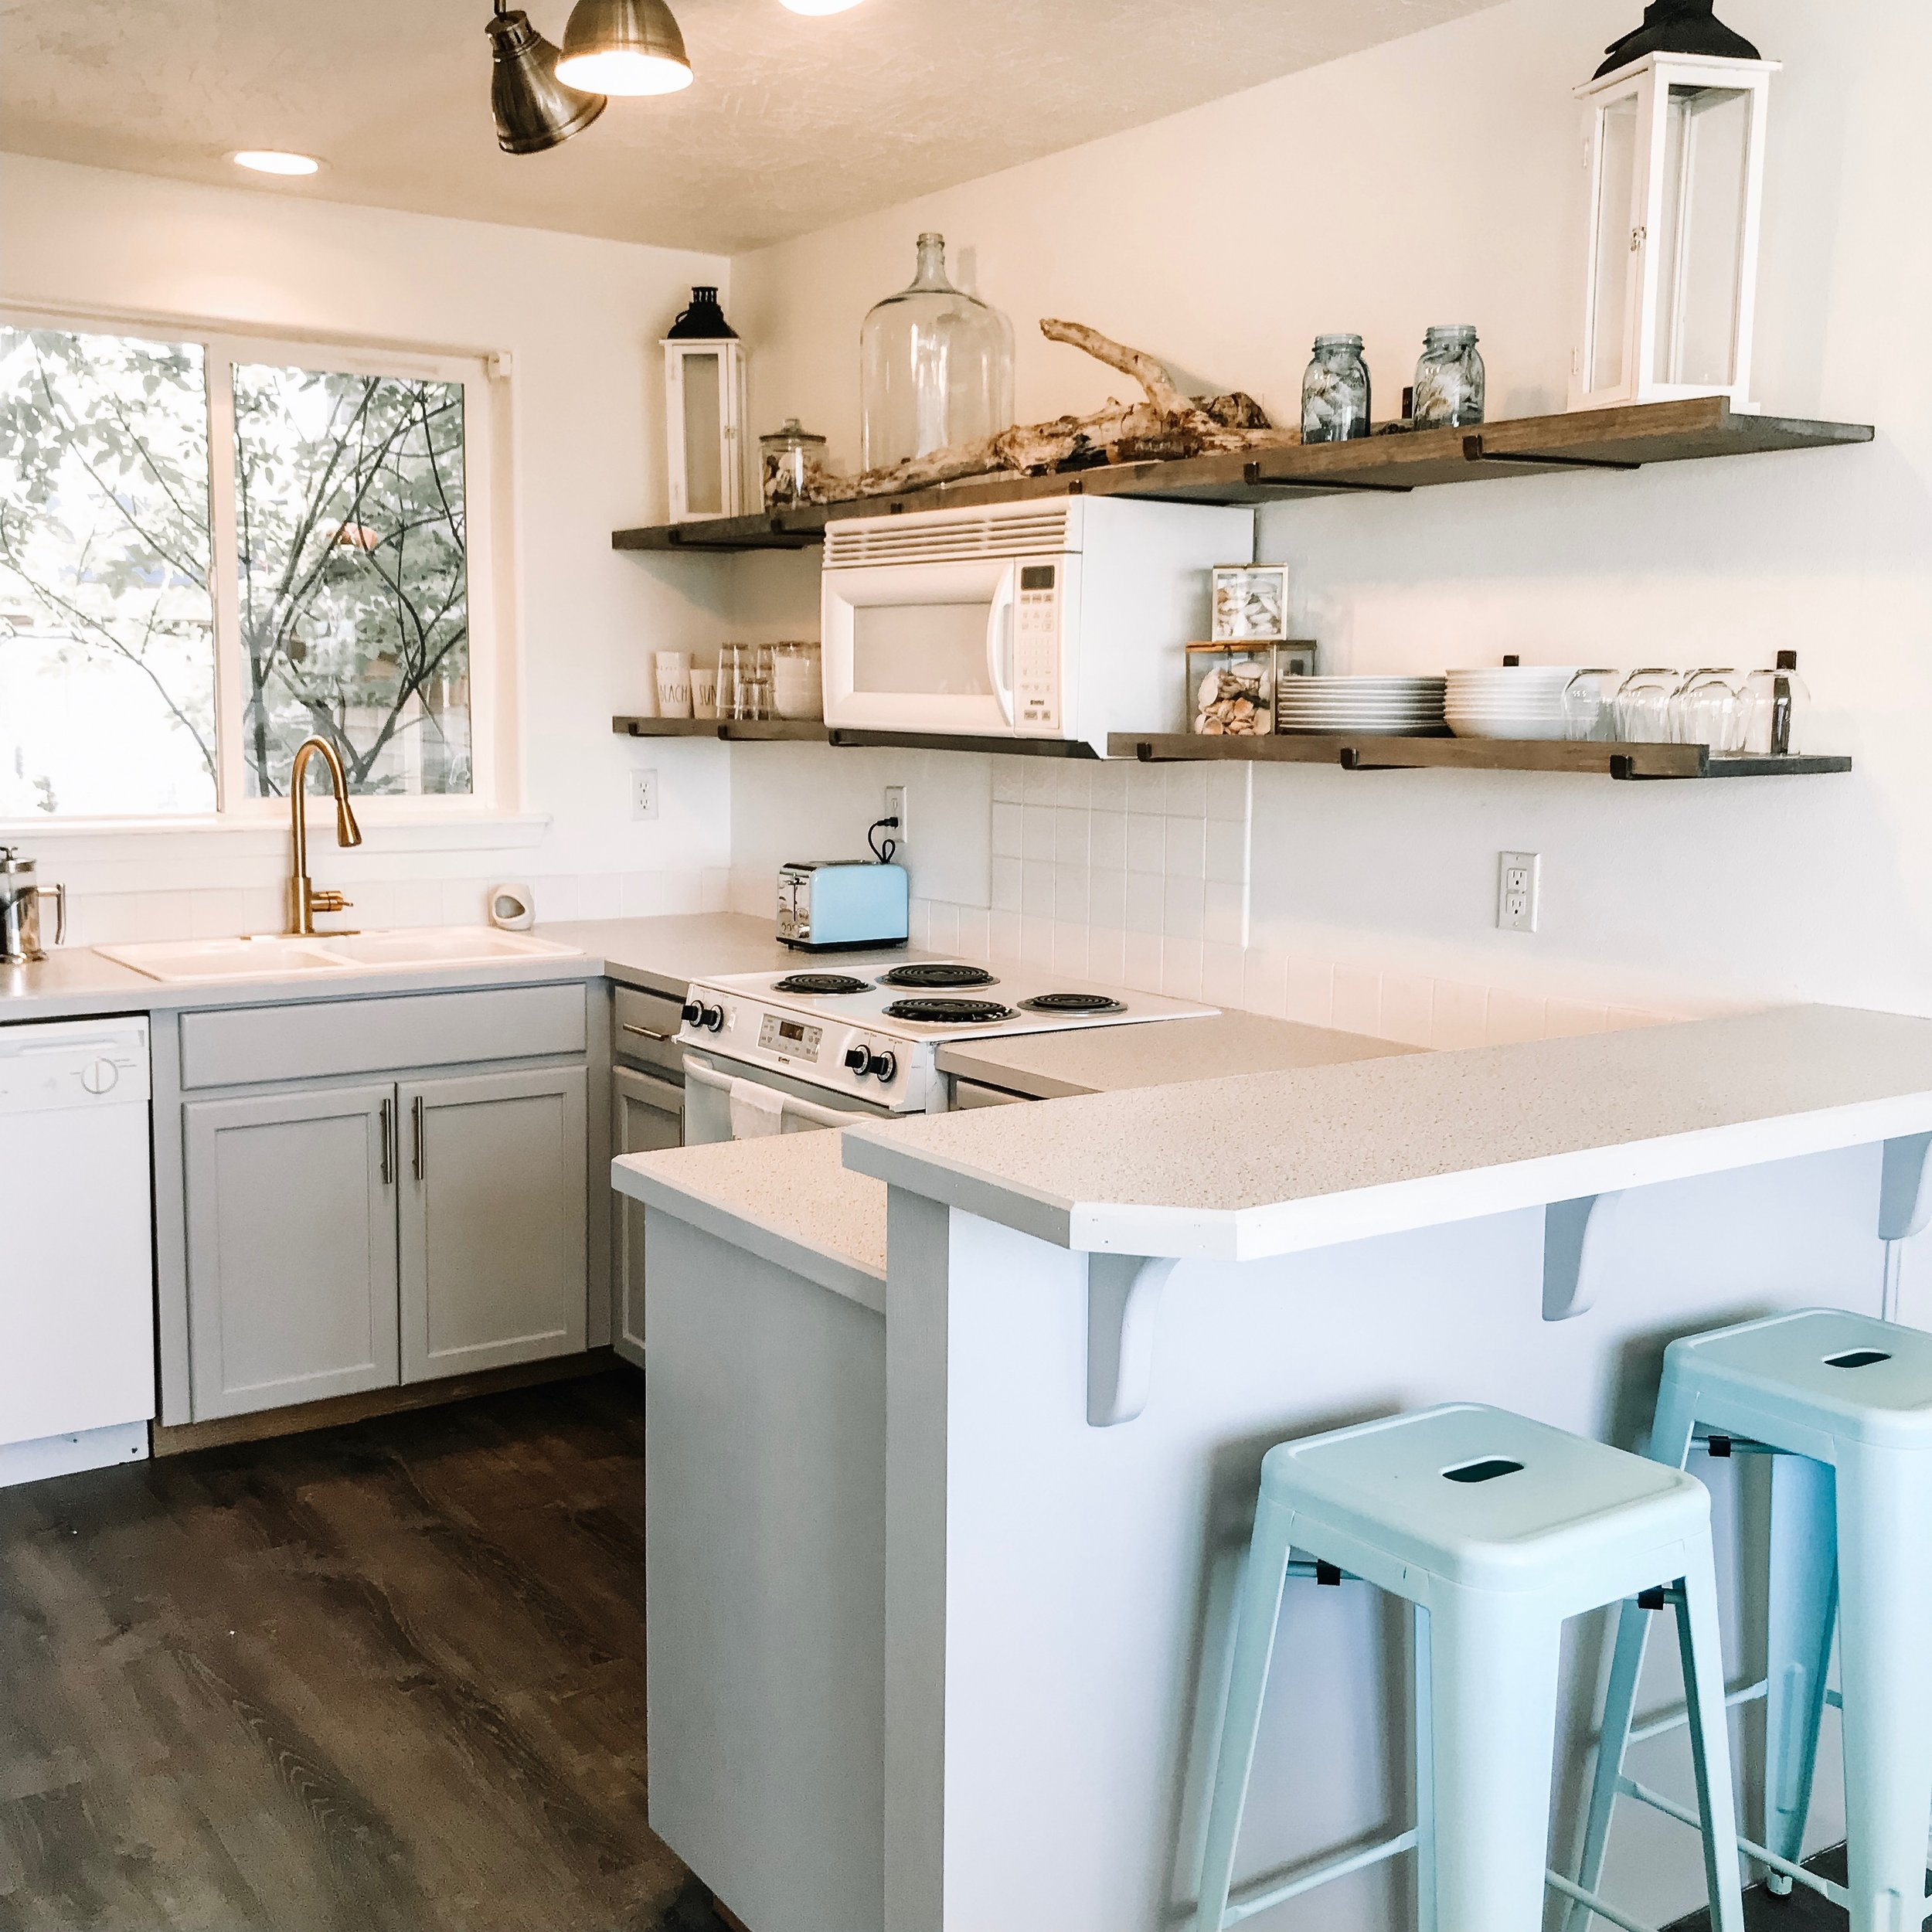 Honey BE Beach House - Enjoy a beach getaway in our custom designed home. Now booking through VRBO!And read our latest blog post about how we designed the Beach House here.